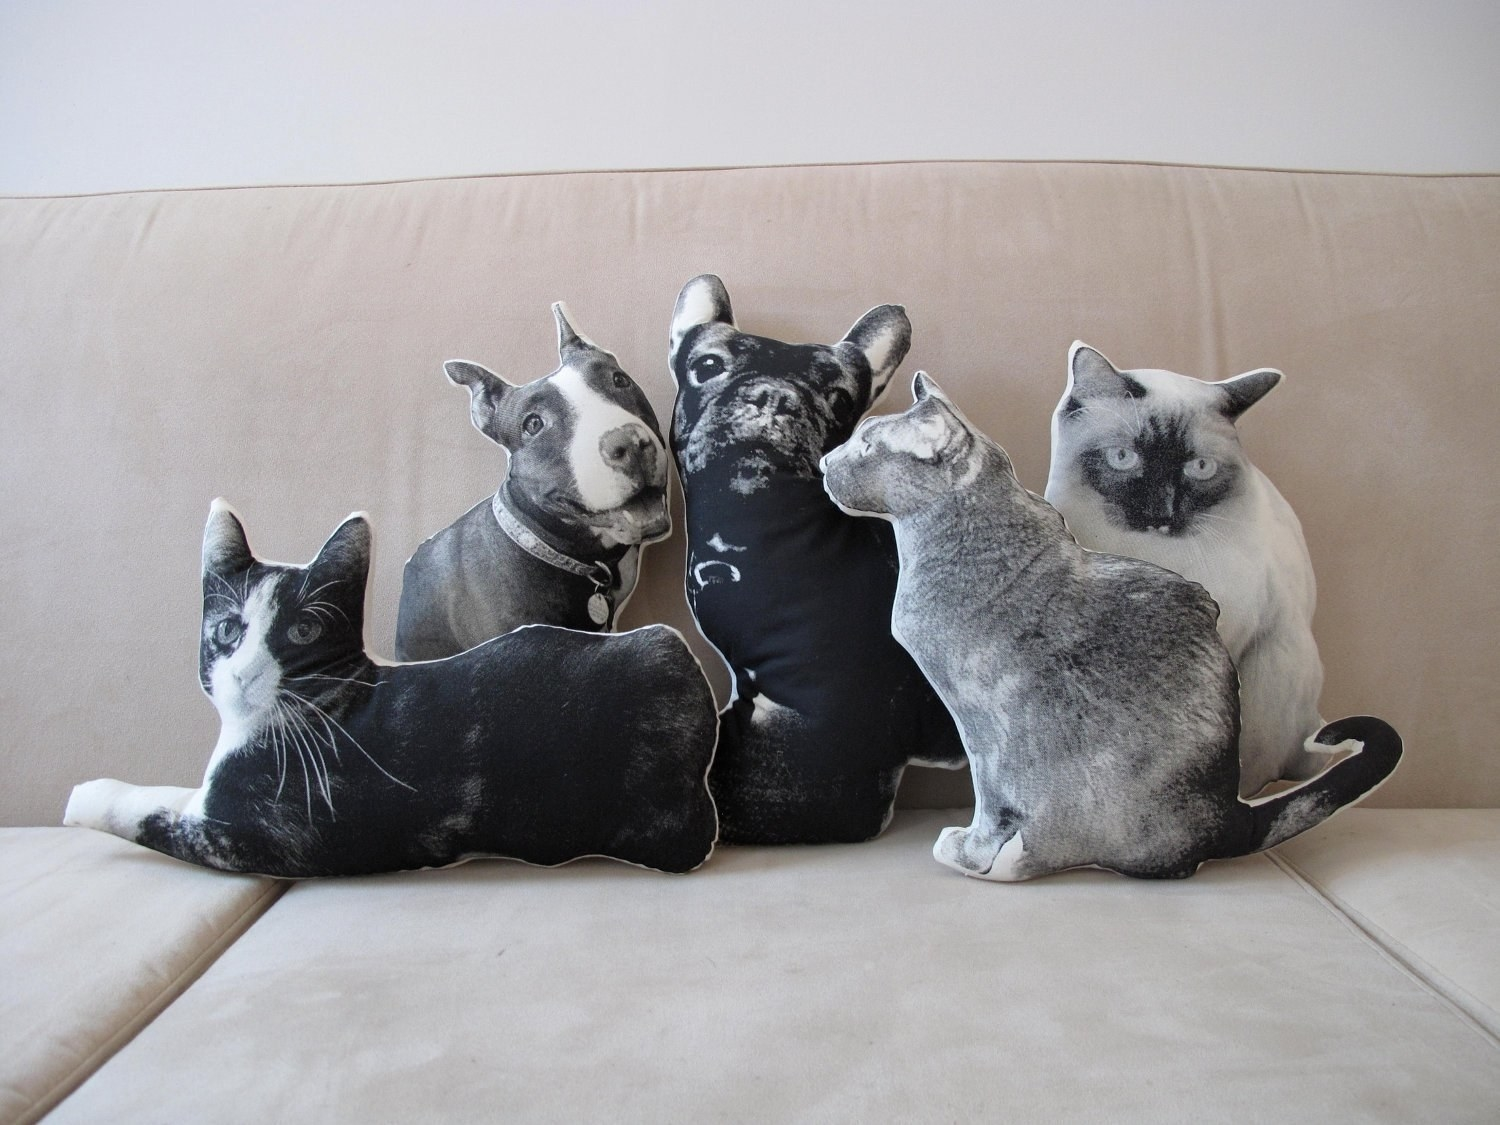 Five pillows of cats and dogs sitting on a couch